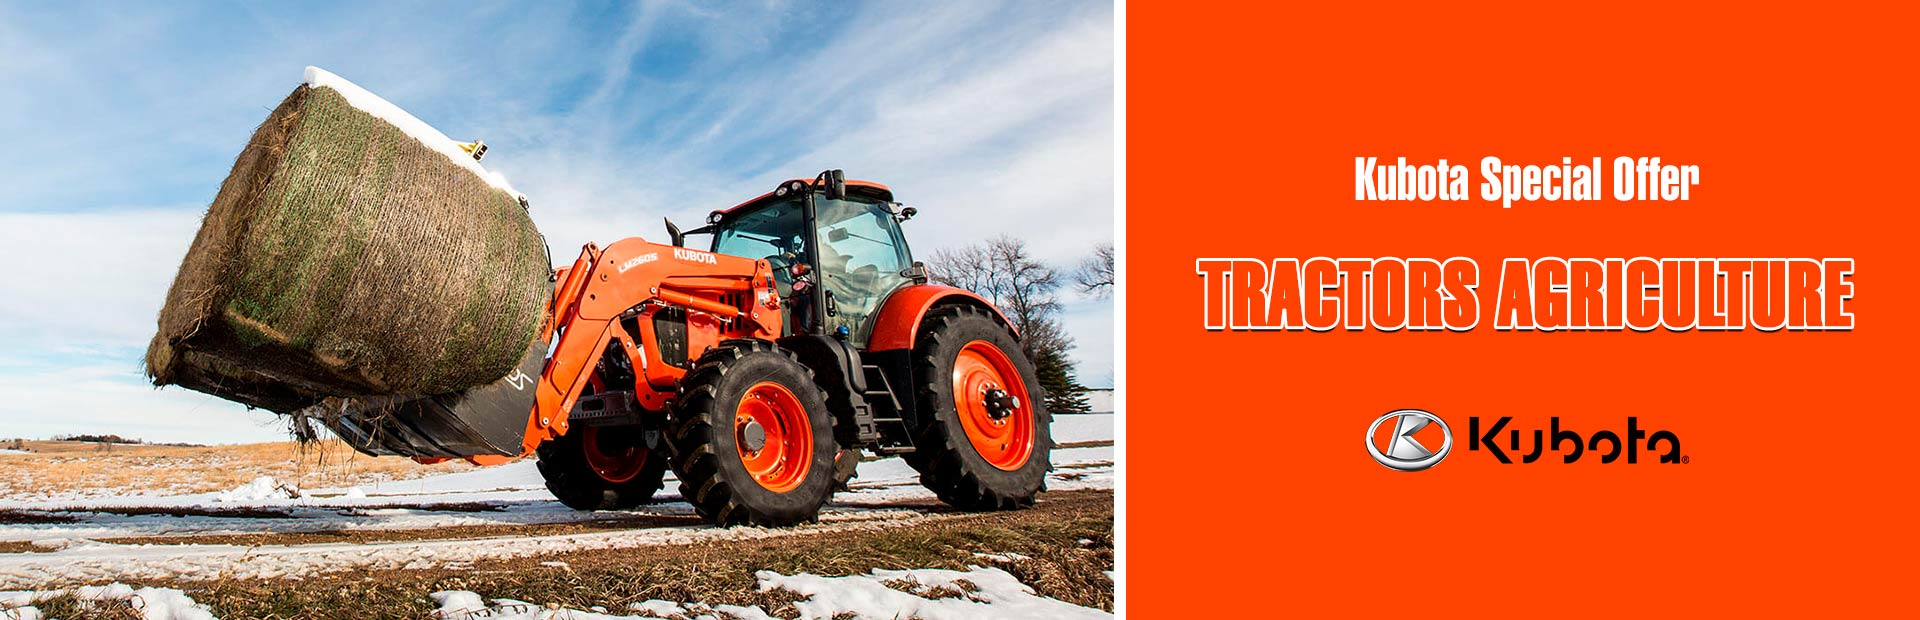 Kubota: Kubota Special Offer - Tractors Agriculture